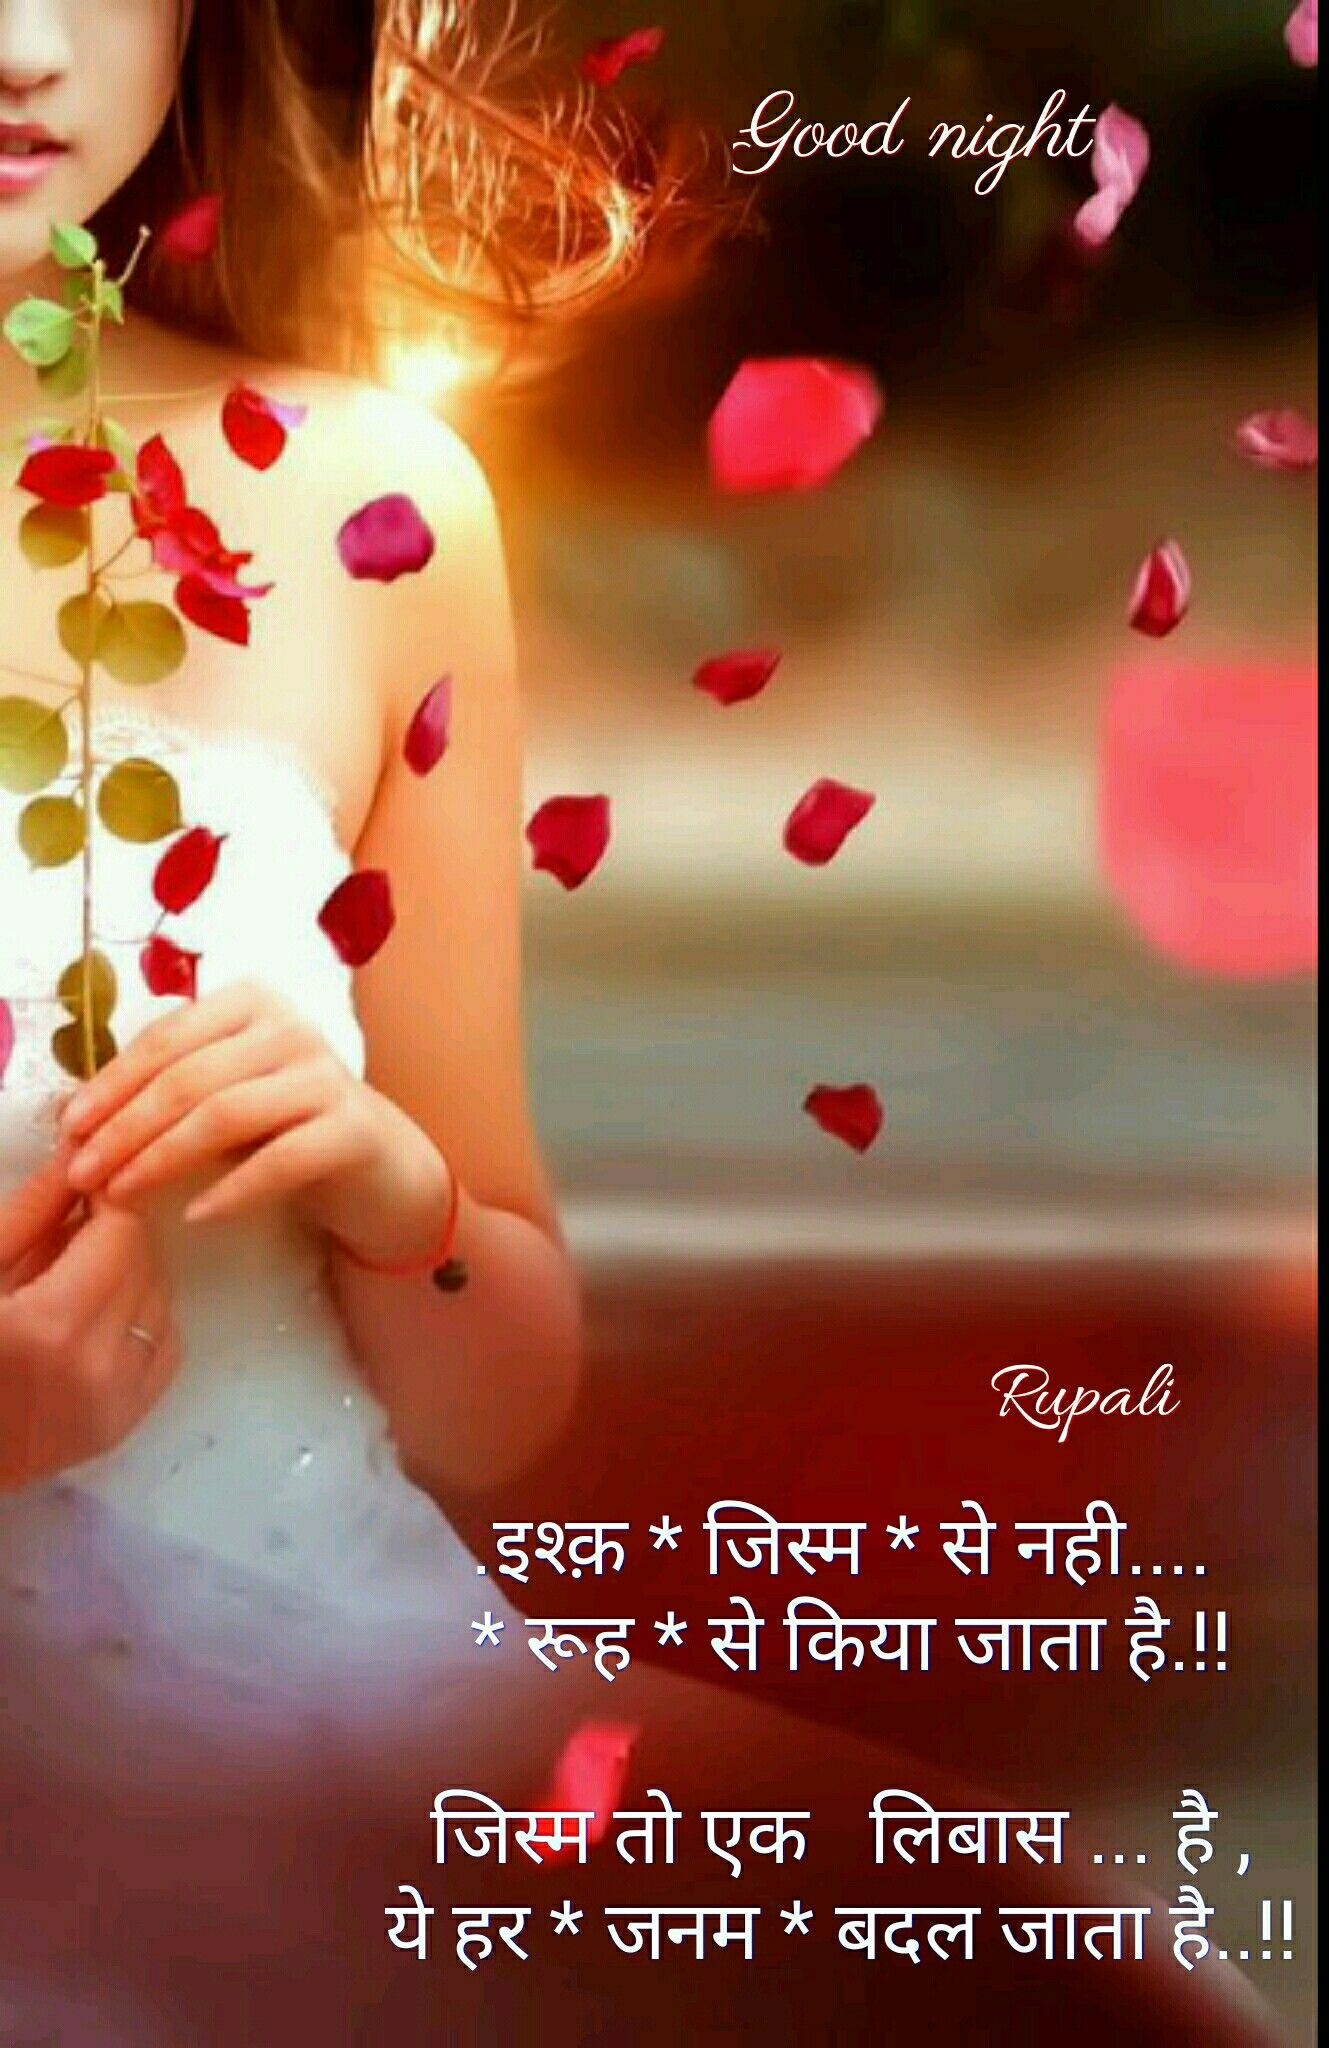 Pin By Rupali Saha On Shayari Pinterest Hindi Quotes Heart